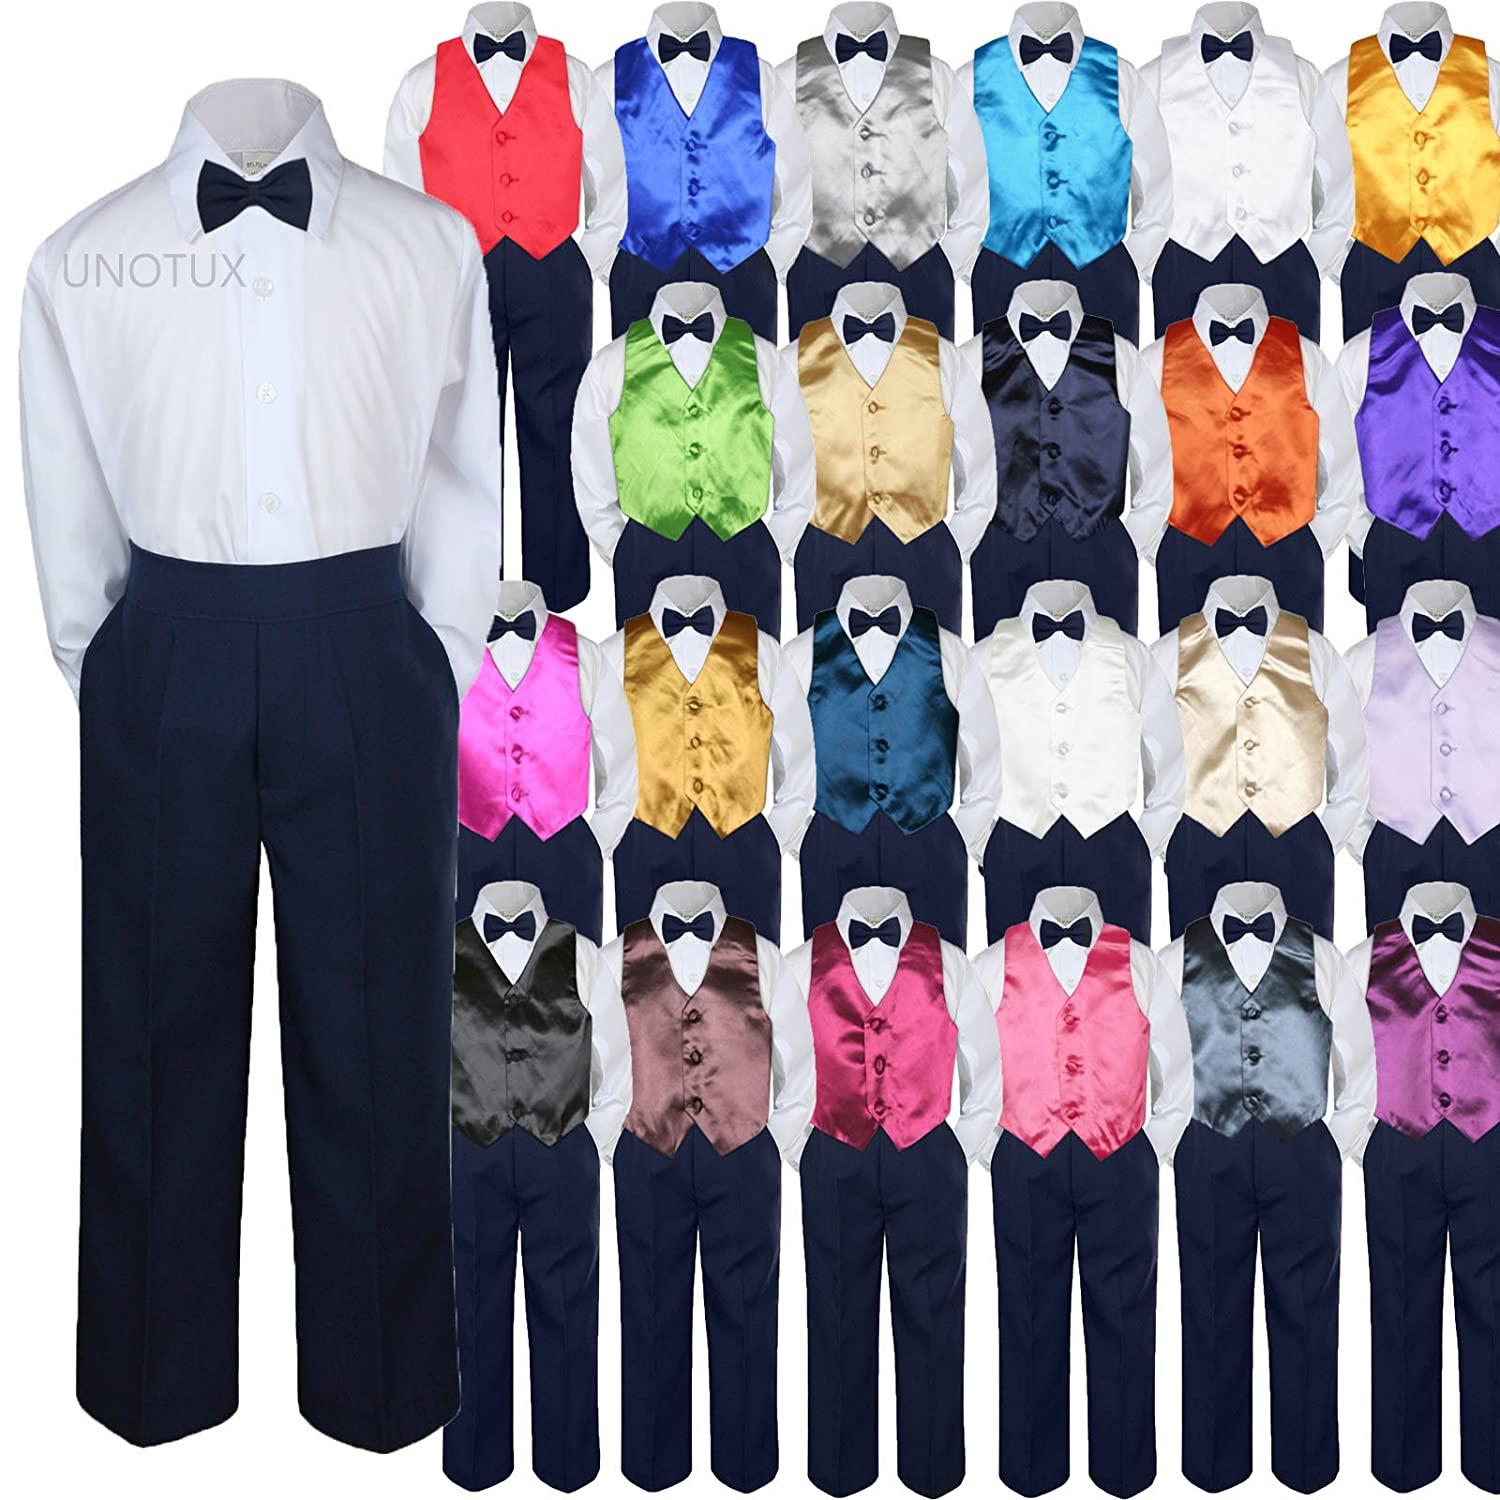 4pc Baby Toddler Kid Boys Champagne Vest Navy Blue Pants Bow Tie Suits Set S-7 5 Leader Textiles /& Garments Co.